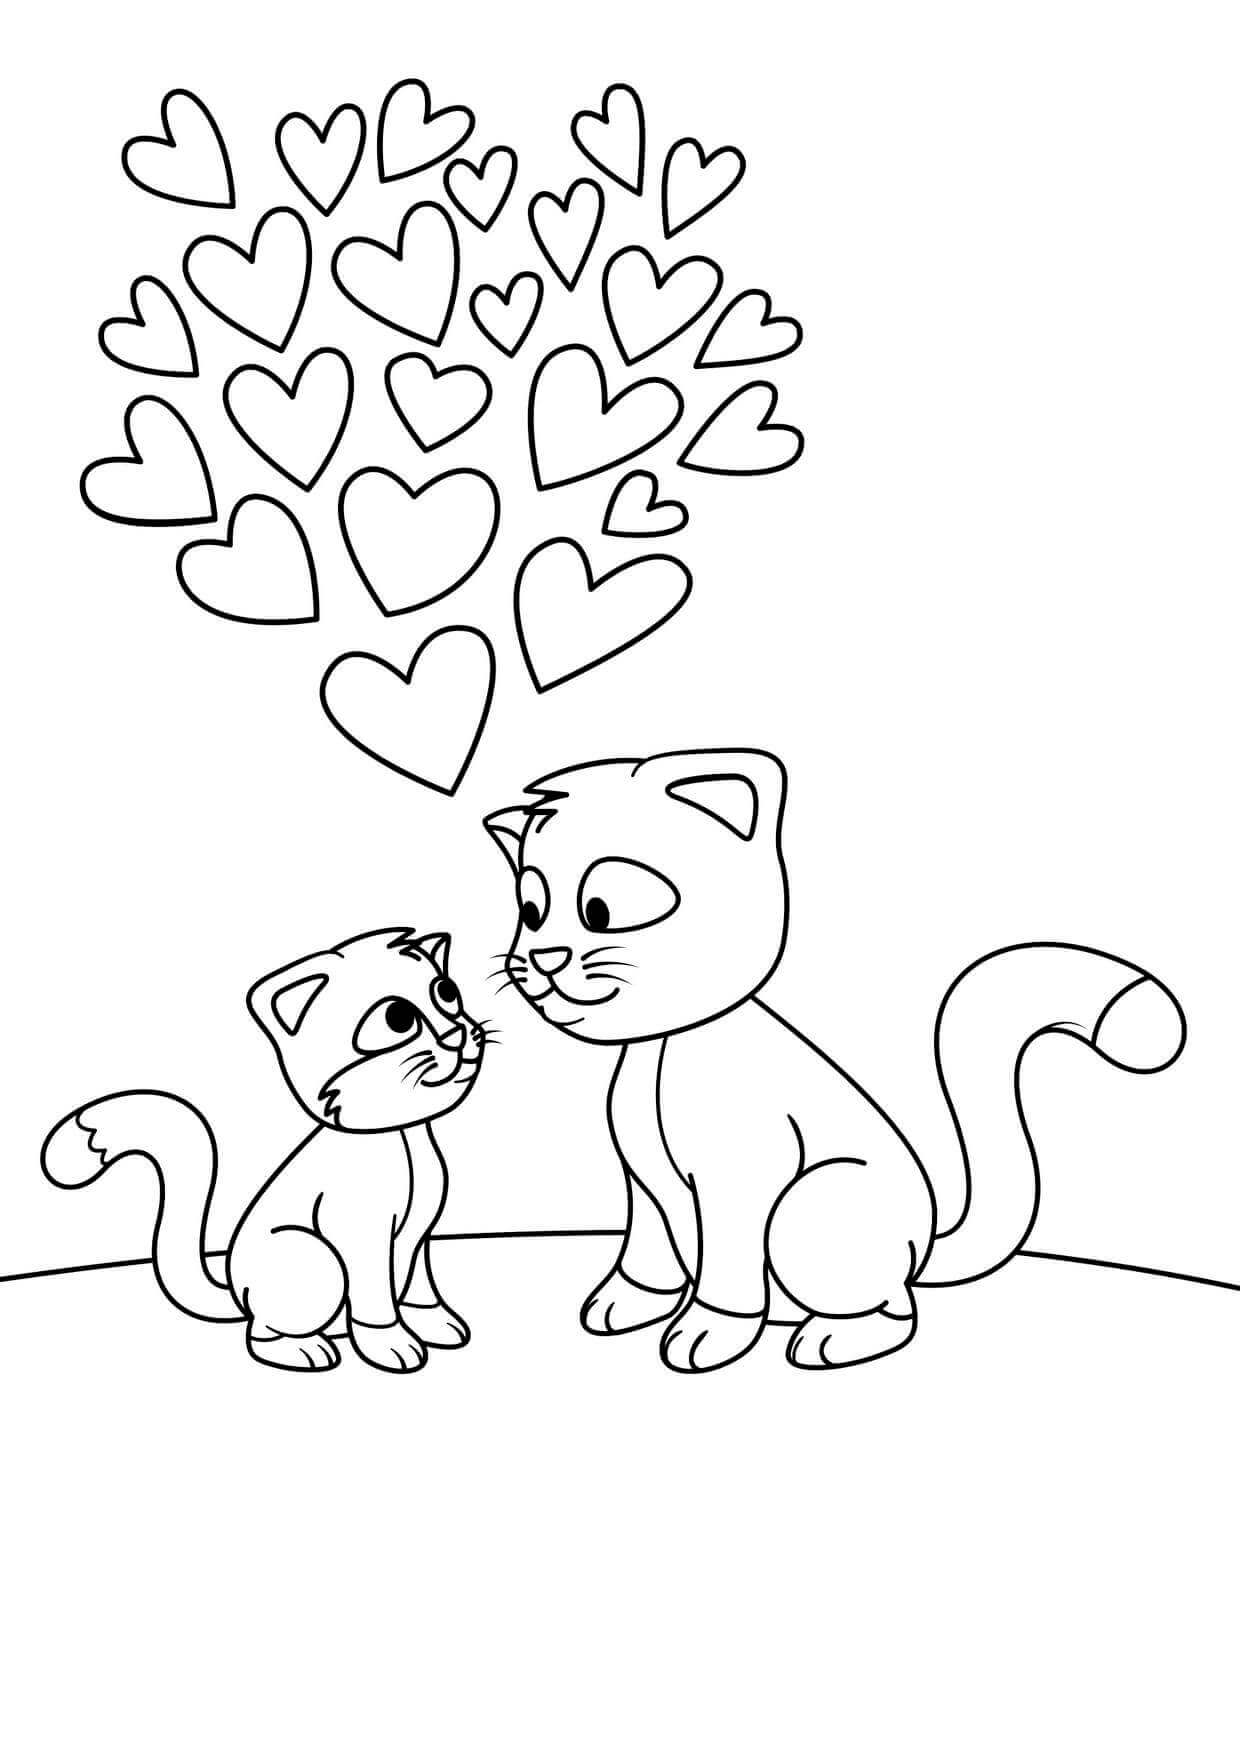 colour in pictures for girls top 25 free printable lisa frank coloring pages online colour for in girls pictures